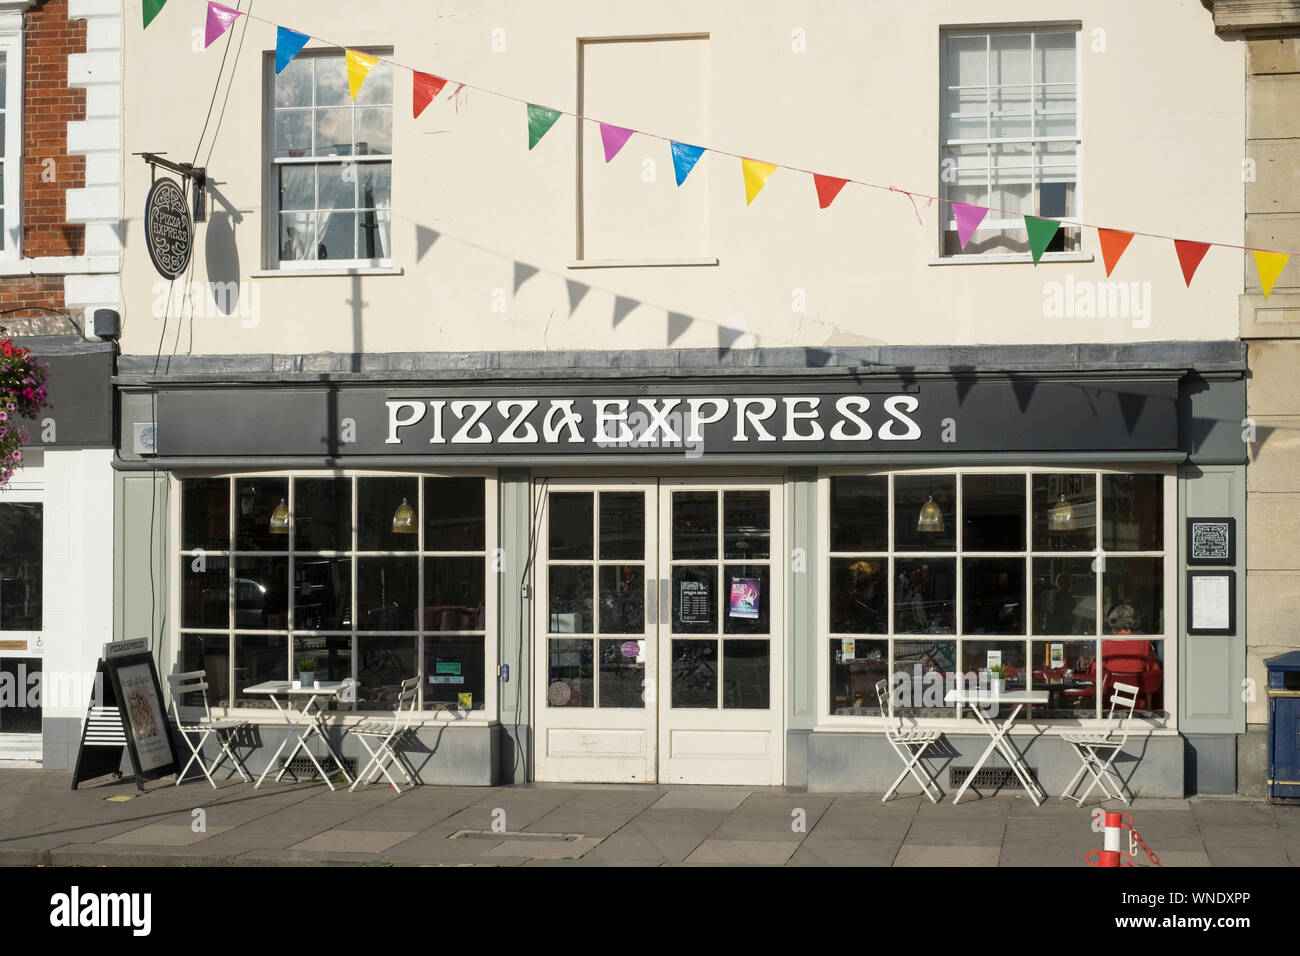 Pizza Express Stock Photos Pizza Express Stock Images Alamy